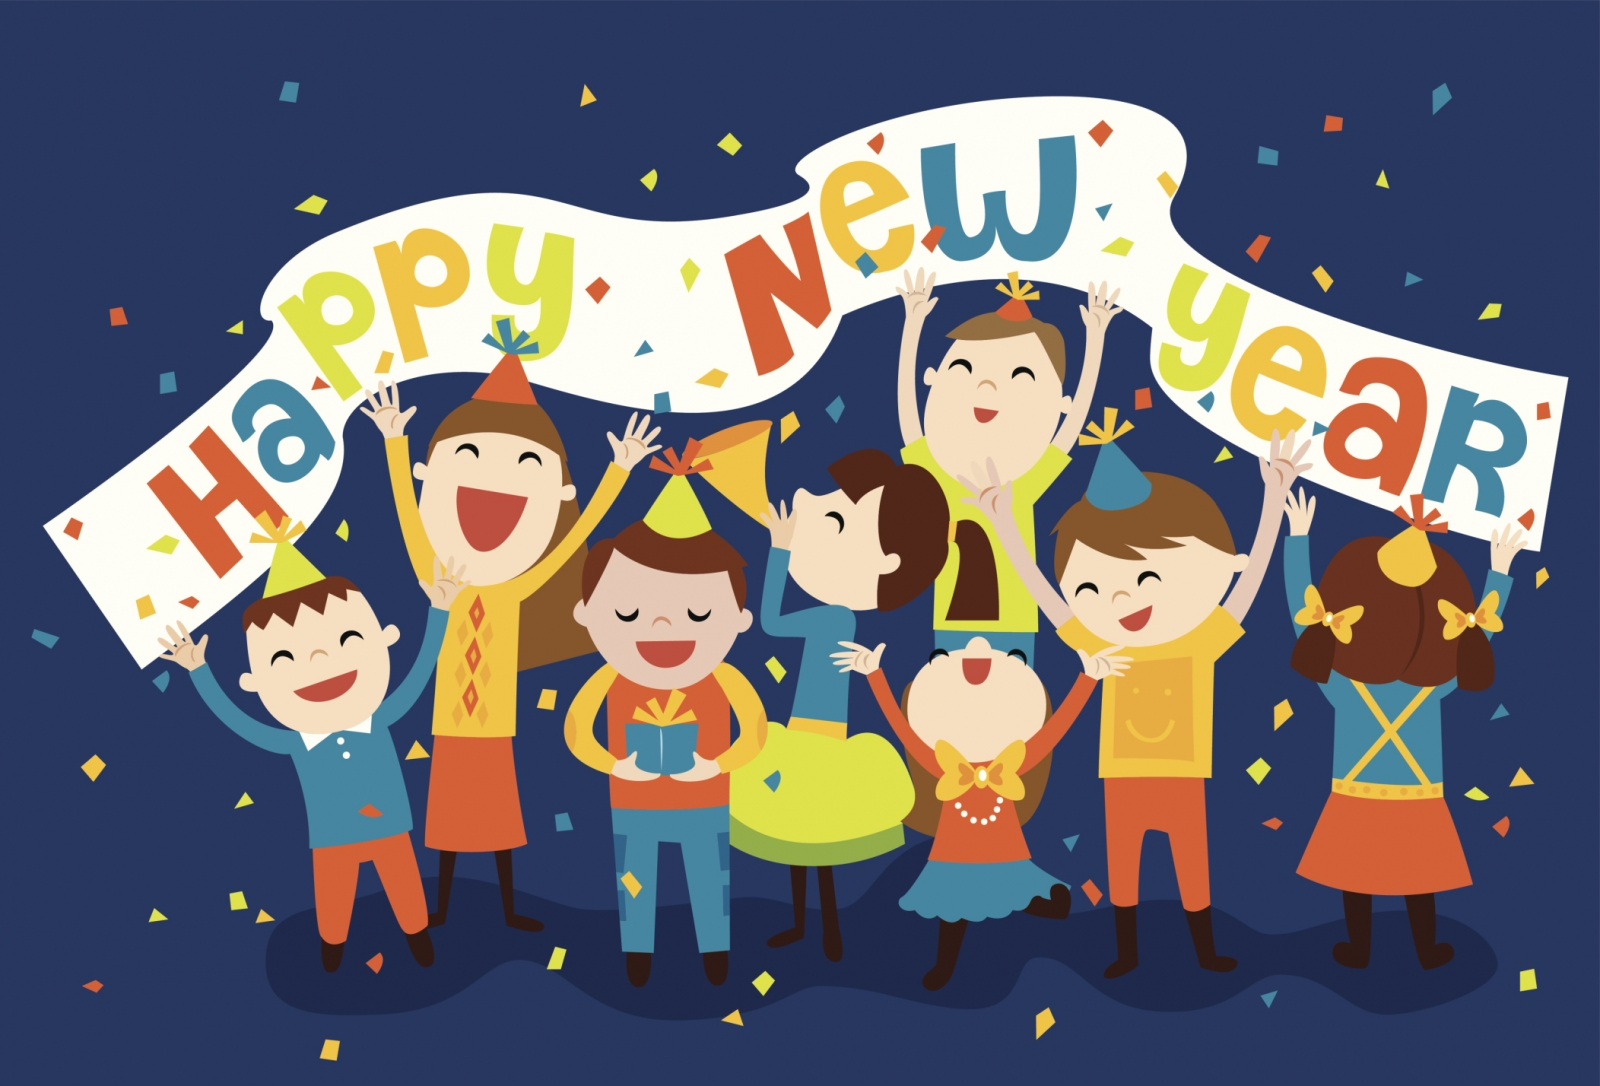 Ring in the new year with the kiddos